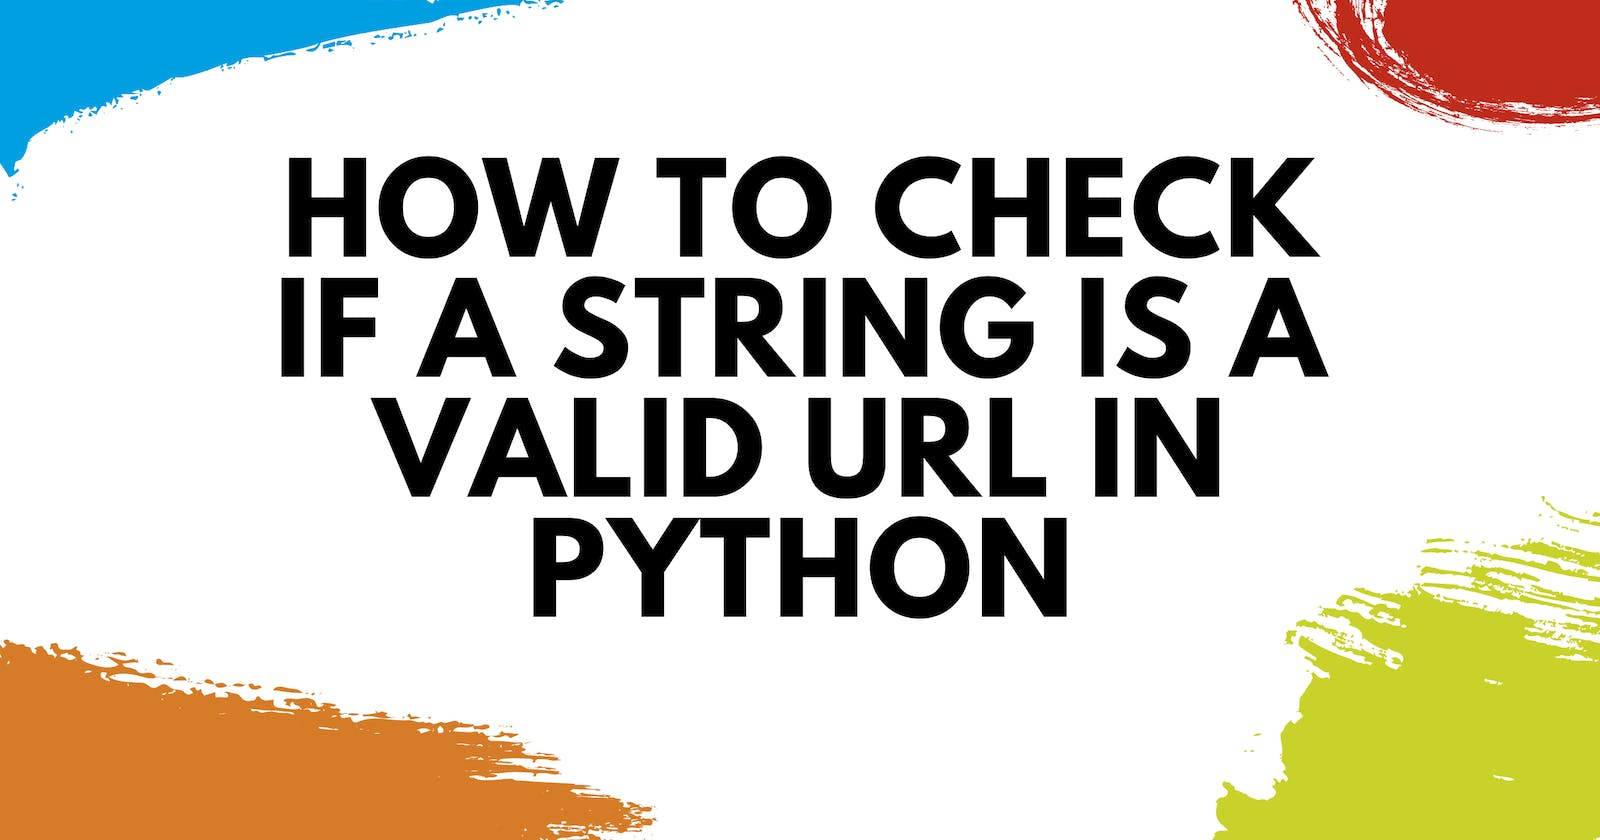 How to Check If a String Is a Valid URL in Python